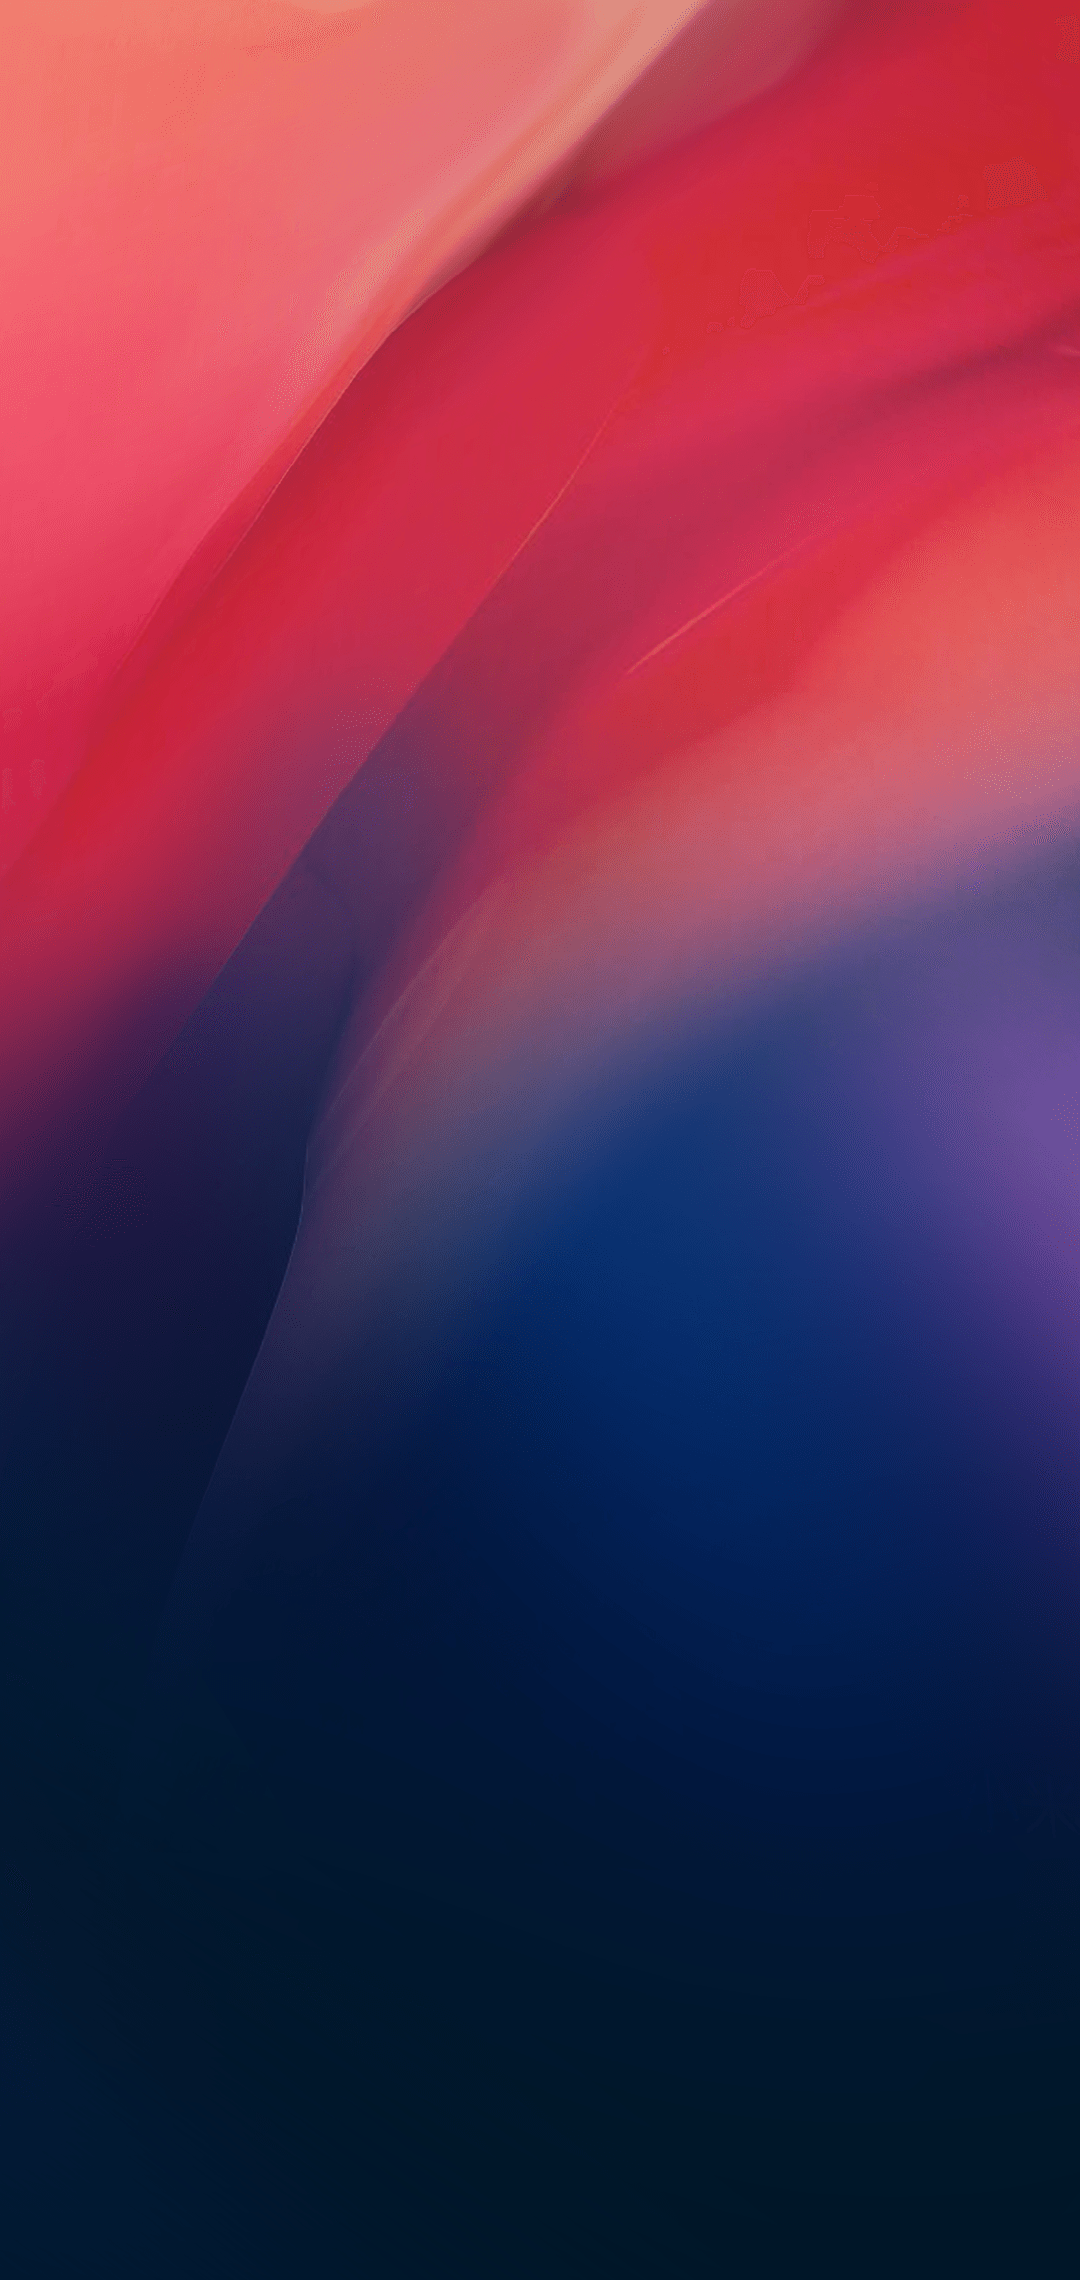 Download Redmi Note 7 Pro Wallpapers in Full HD+ Resolution